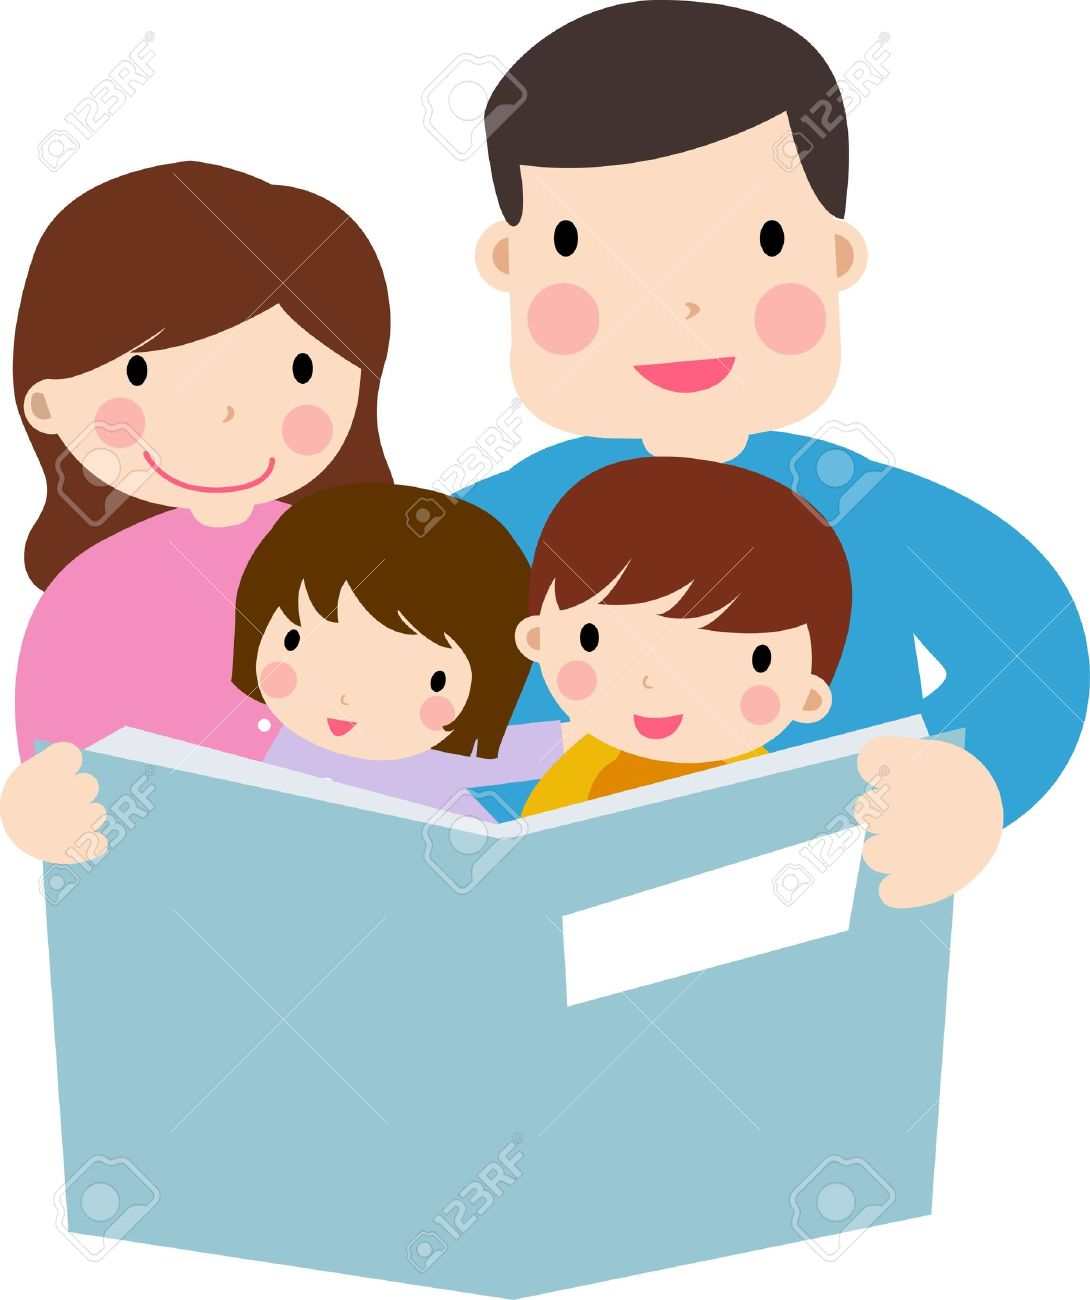 1090x1300 Children Reading With Parents Clip Art 101 Clip Art